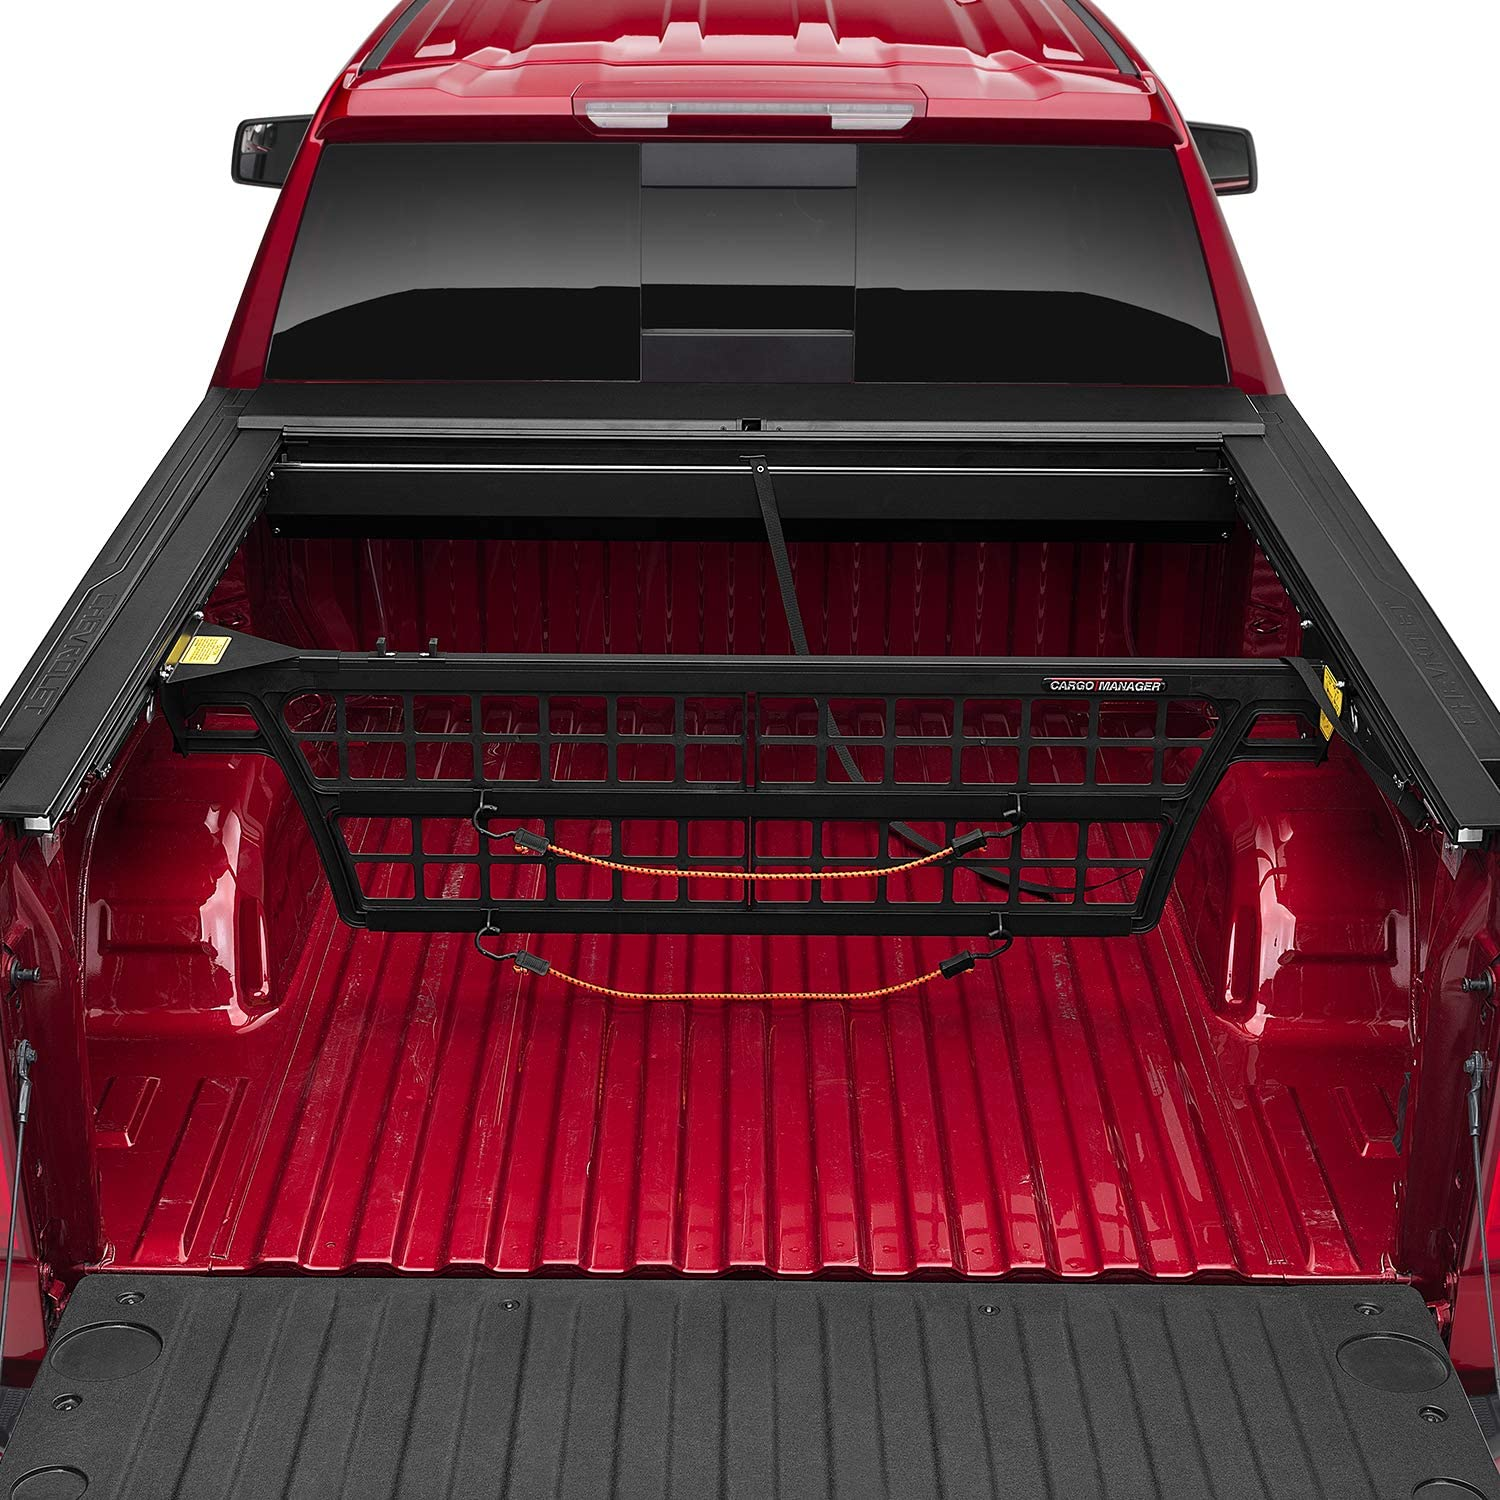 Roll N Lock Cargo Manager Truck Bed Organizer | CM123 | Fits 2019 - 2020 Ford Ranger 6' Bed